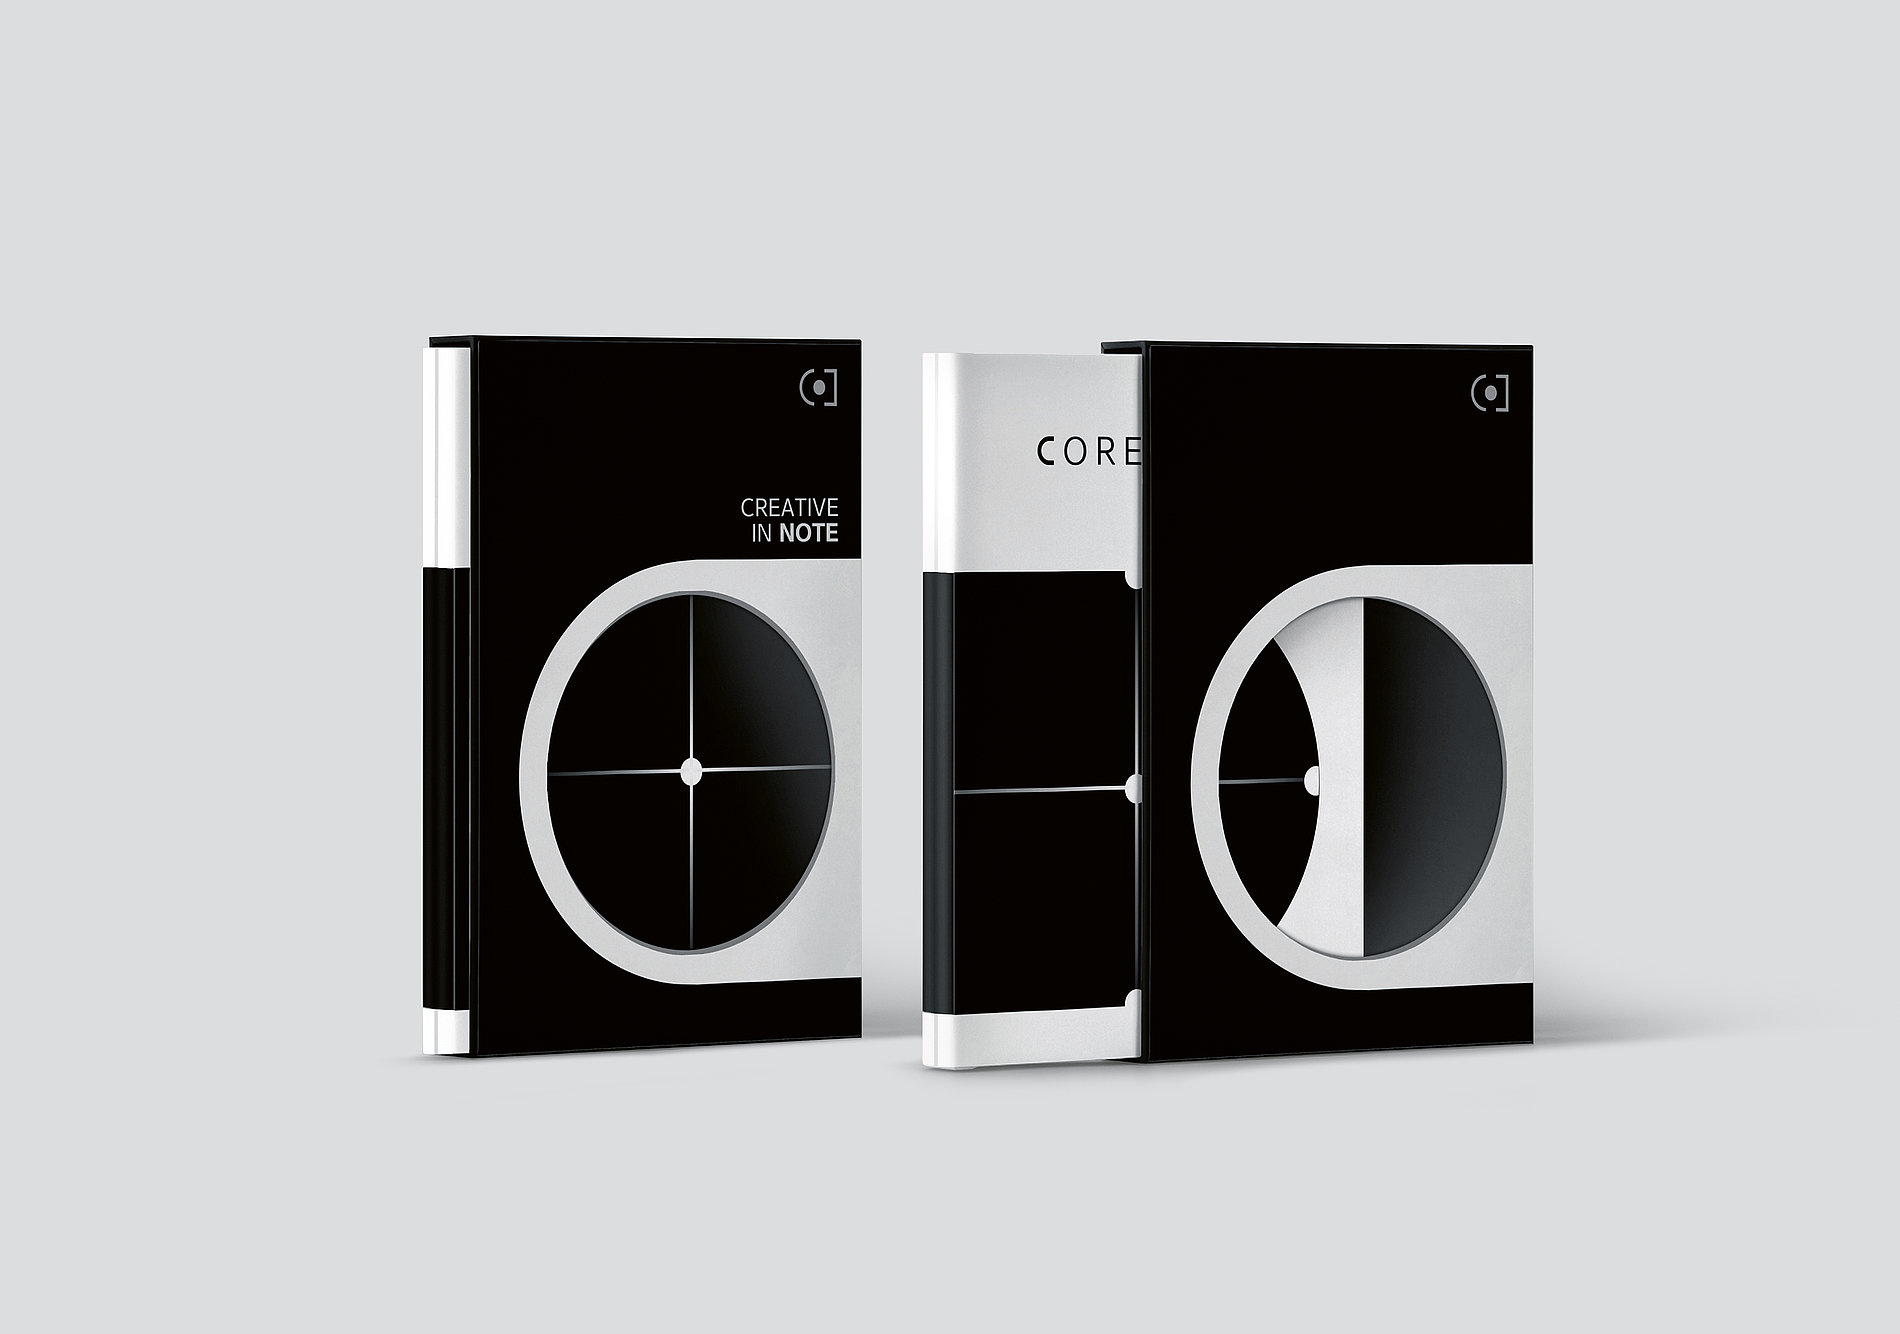 Coreintive | Red Dot Design Award